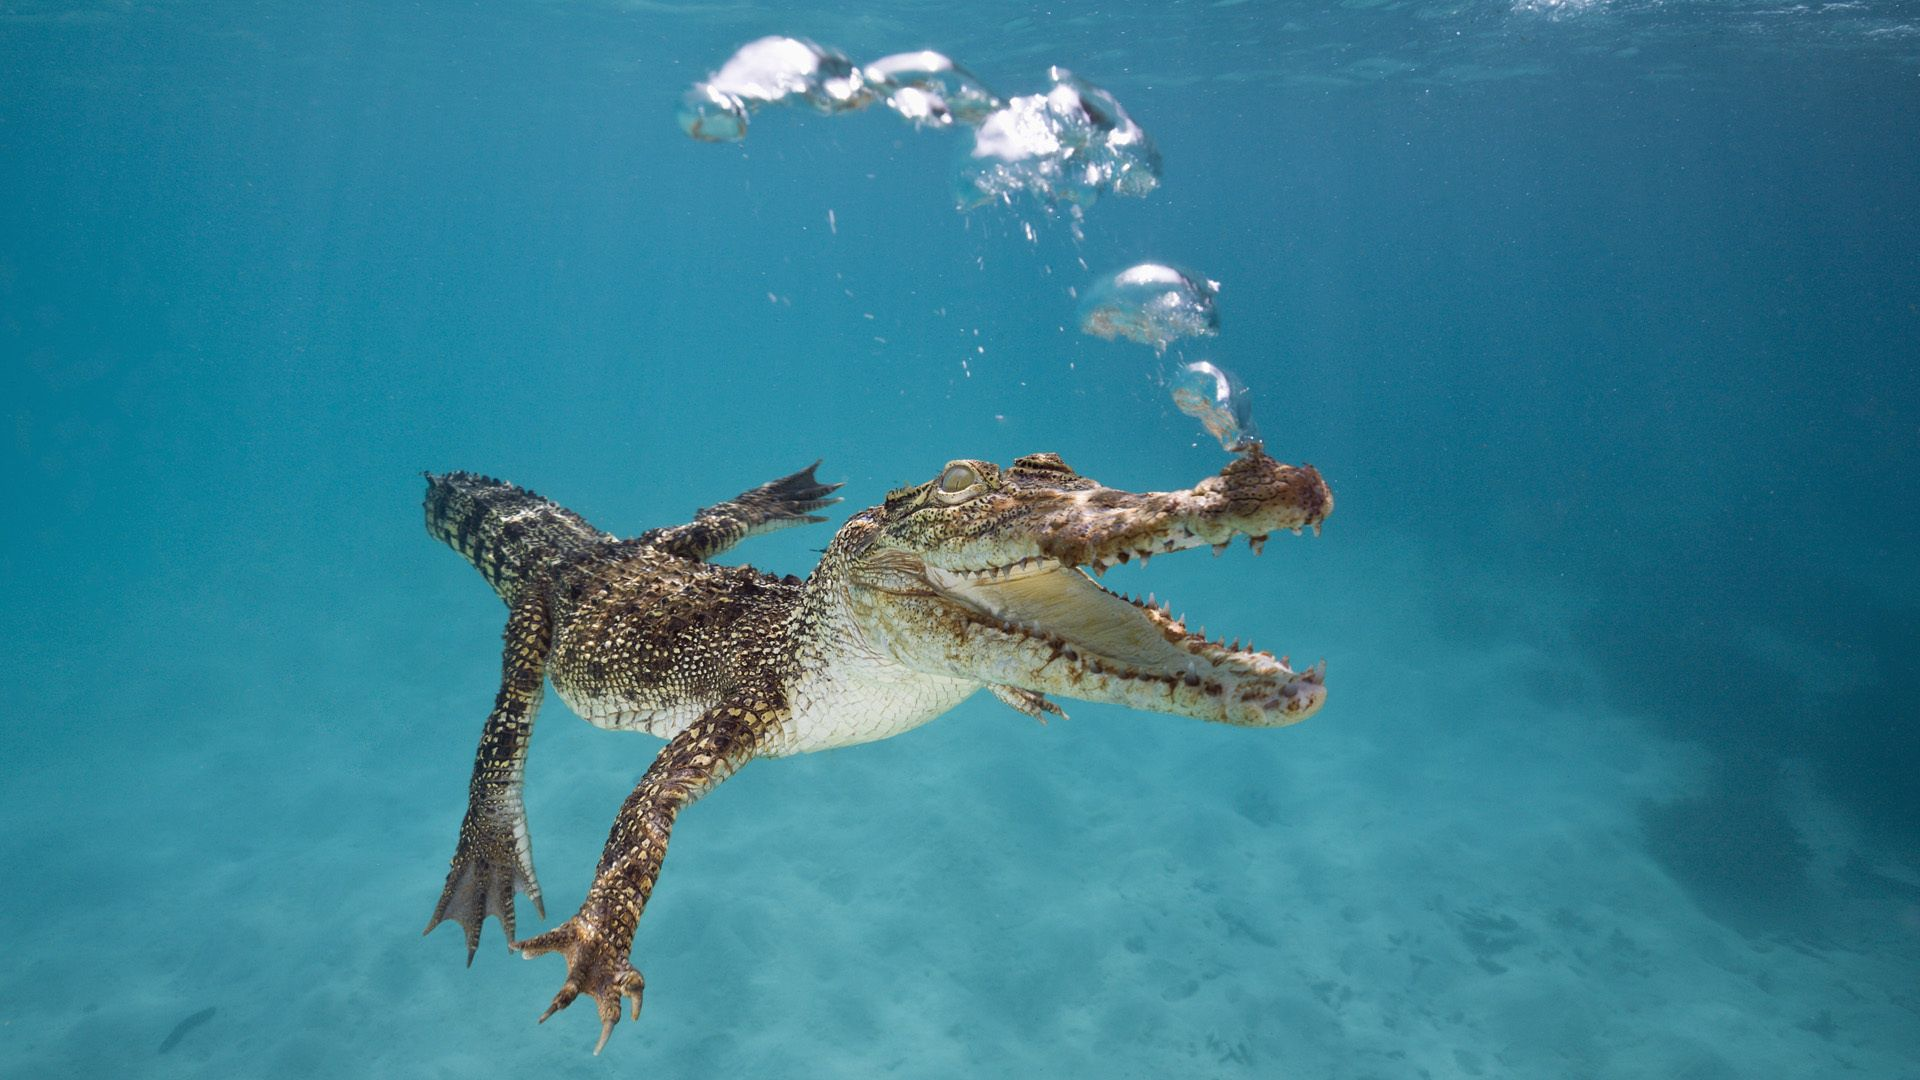 97280 download wallpaper Animals, Crocodile, Young, Joey, To Swim, Swim, Underwater World, Breath, Bubbles screensavers and pictures for free